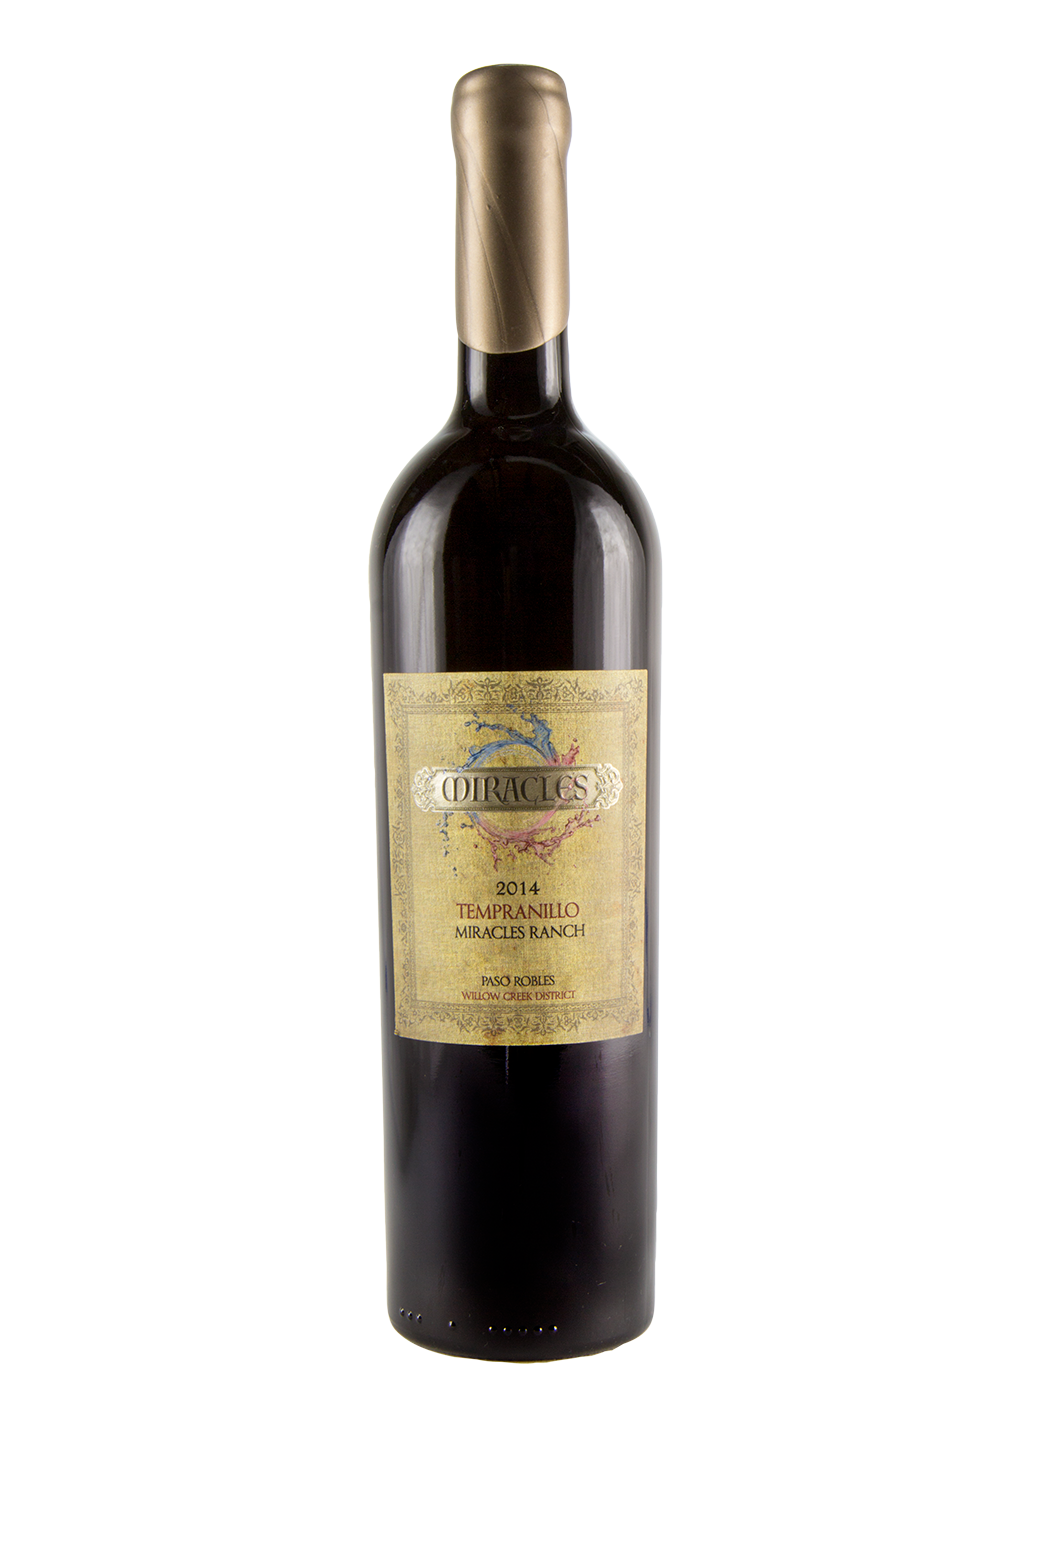 2014 Miracles Tempranillo Product Image